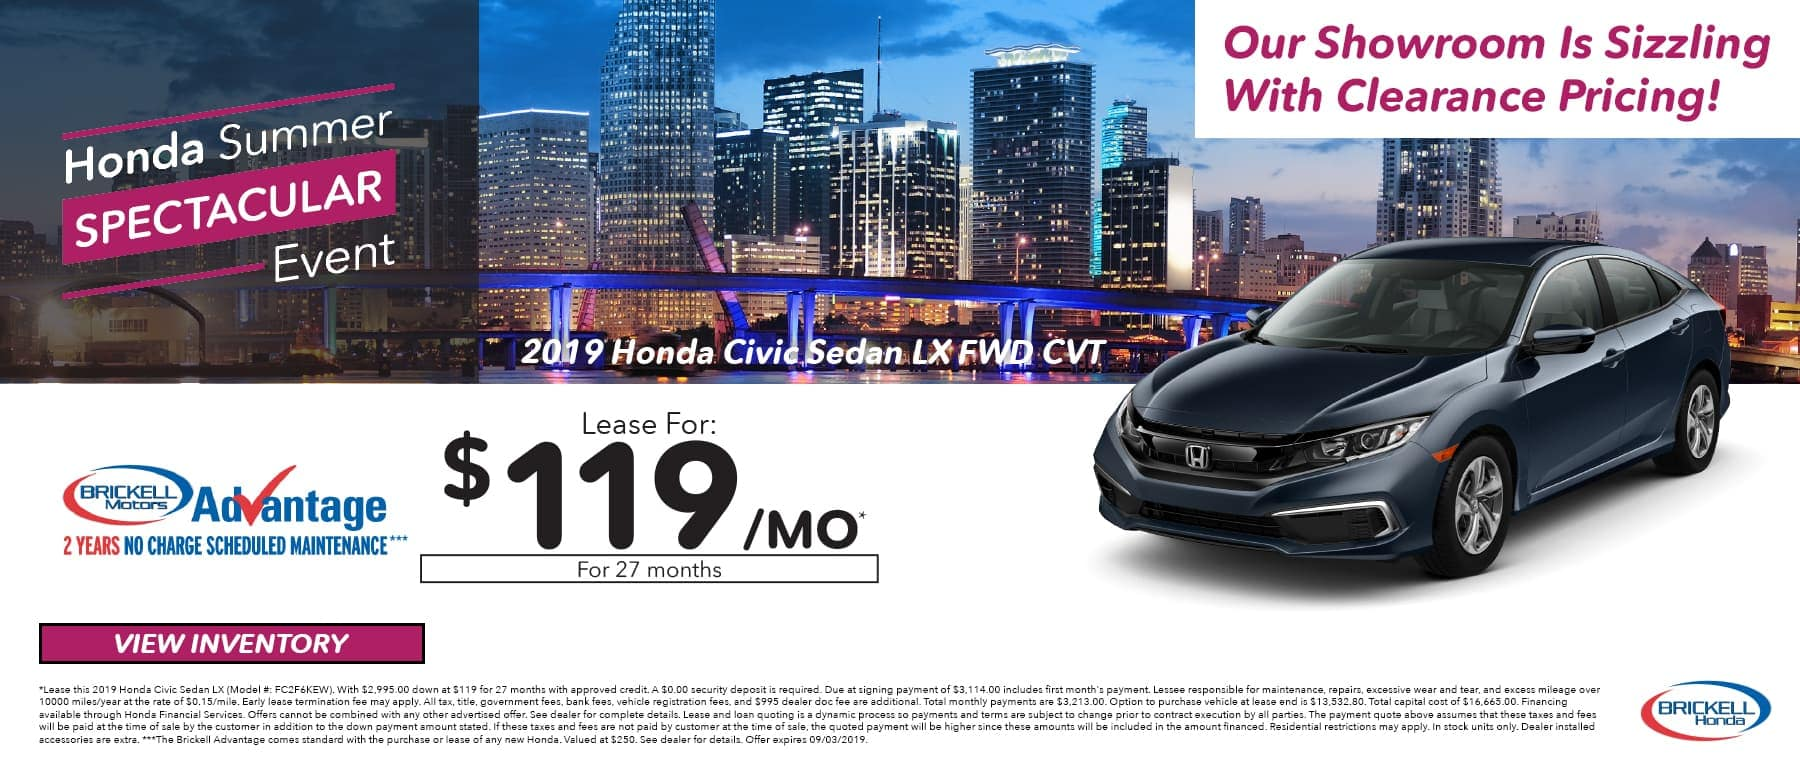 Honda Summer Event 2019 Honda Civic Sedan LX FWD